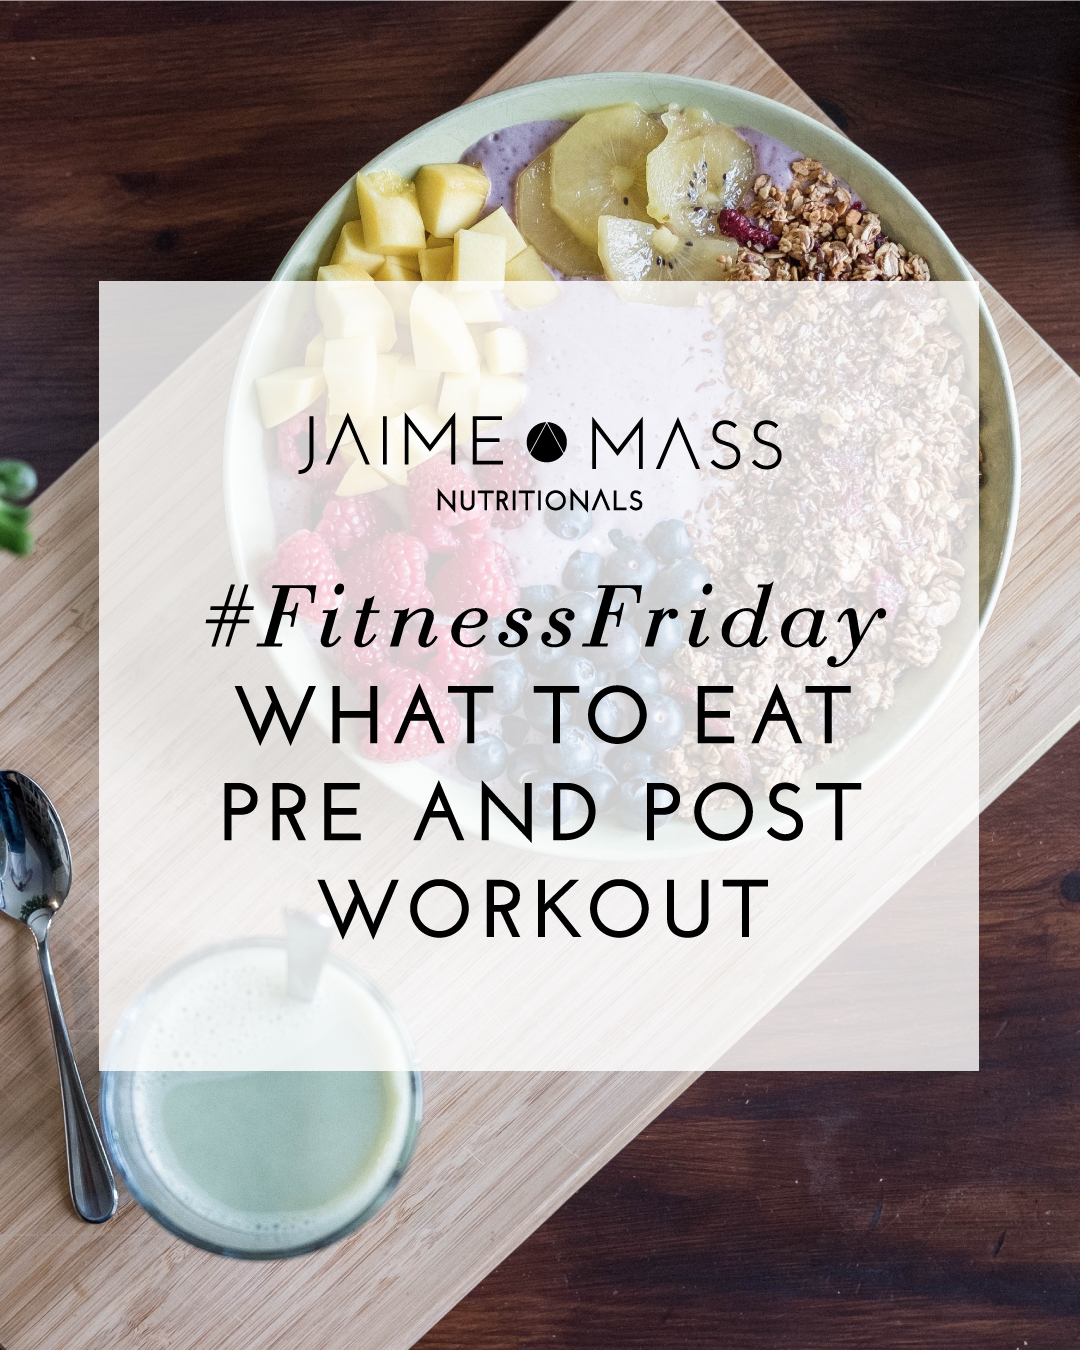 #FitnessFriday: What to Eat Pre- and Post-Workout